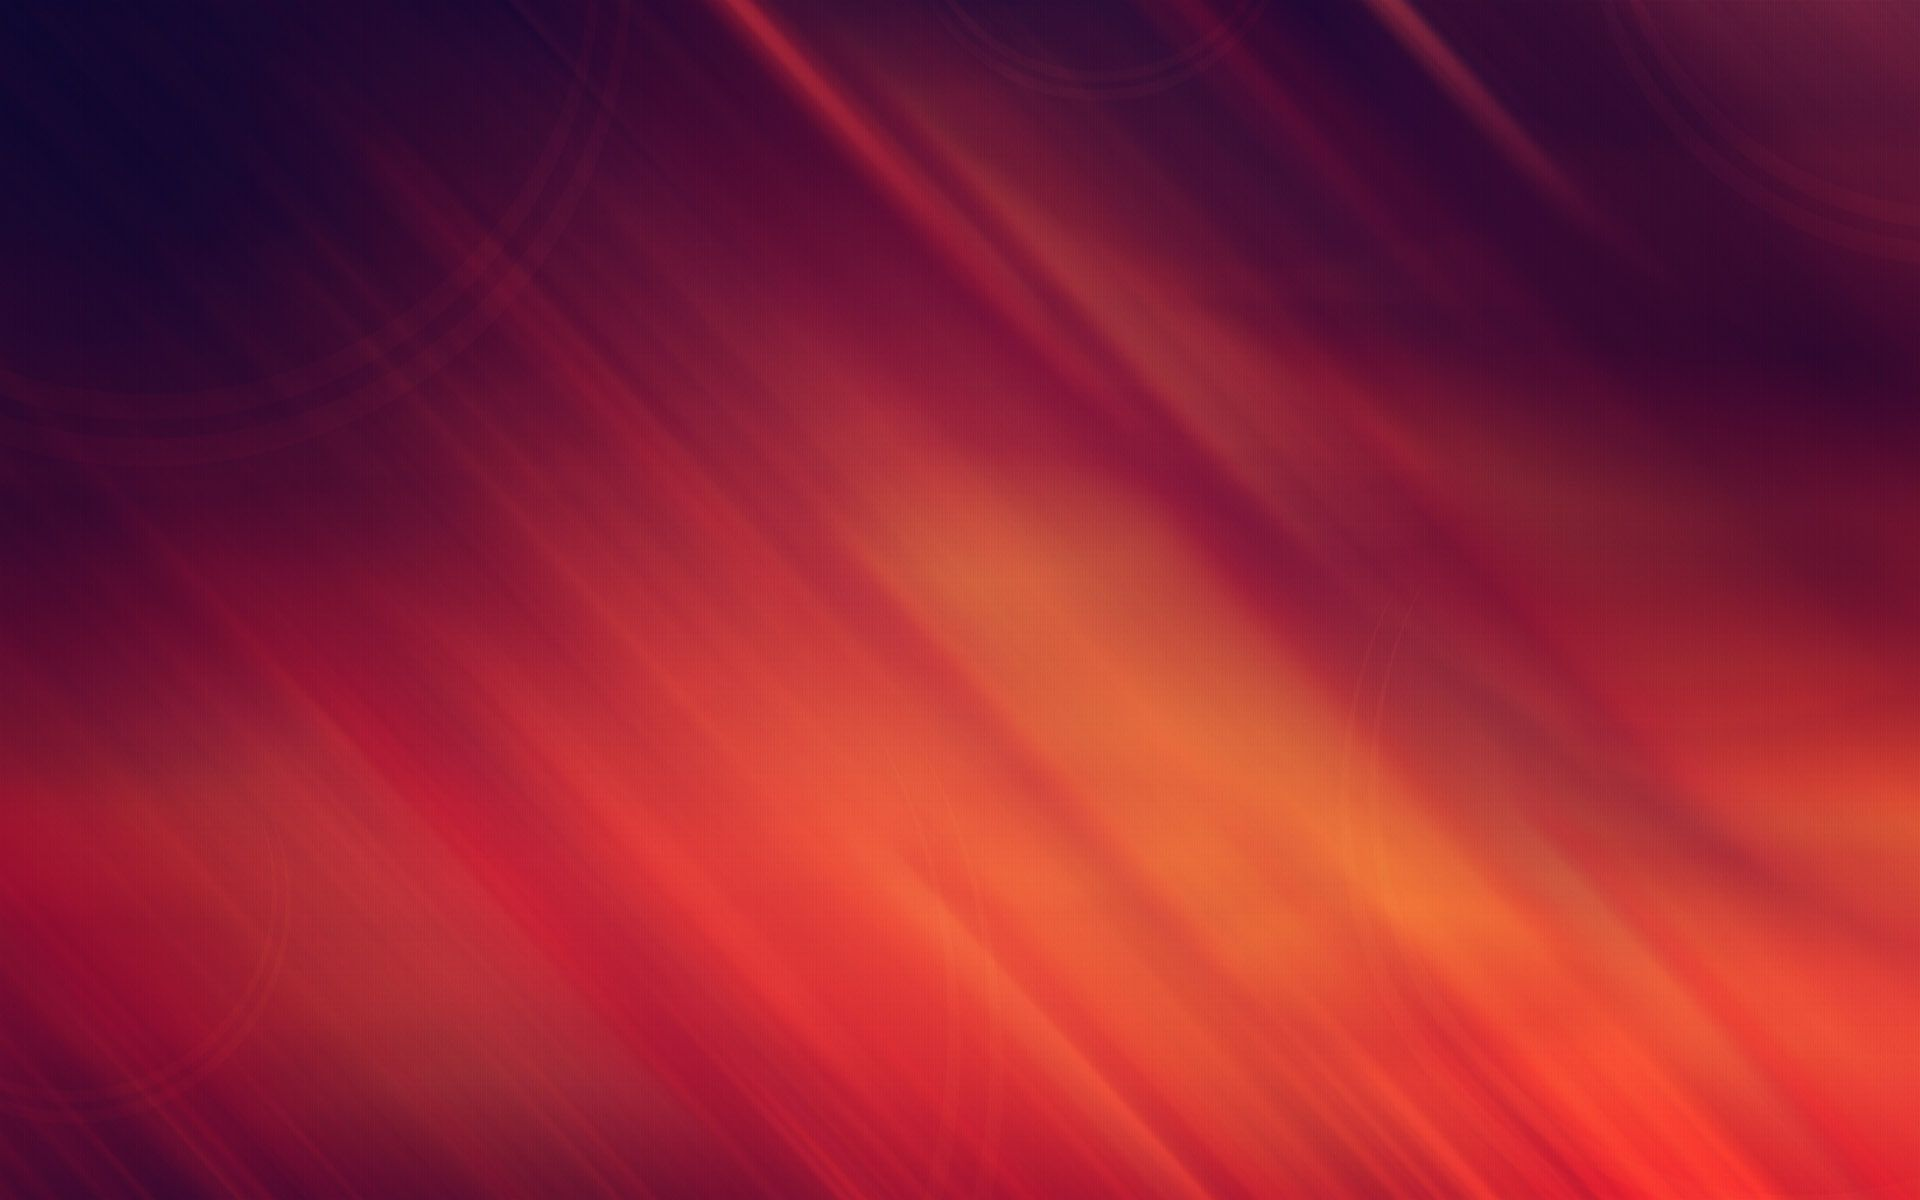 Stunning Red Backgrounds